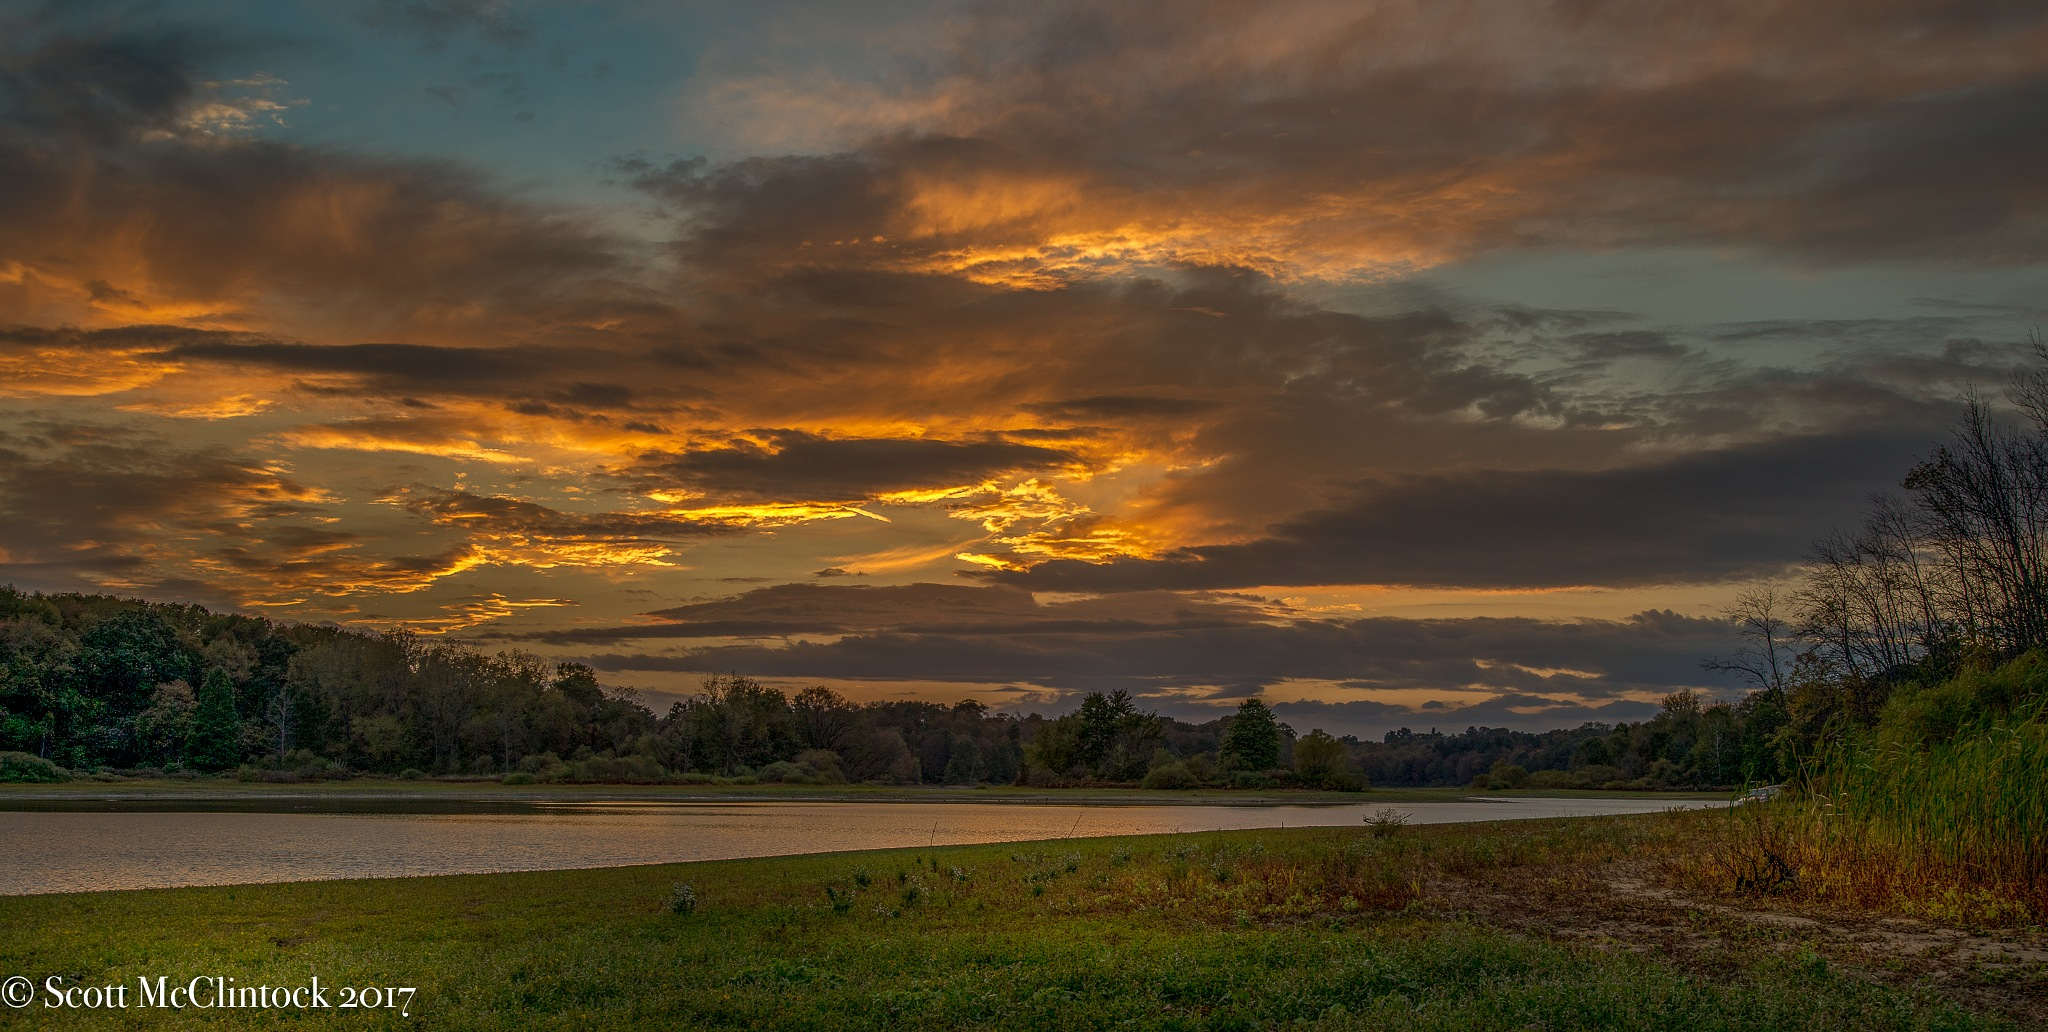 Sunset in Ohio by Scottmcc